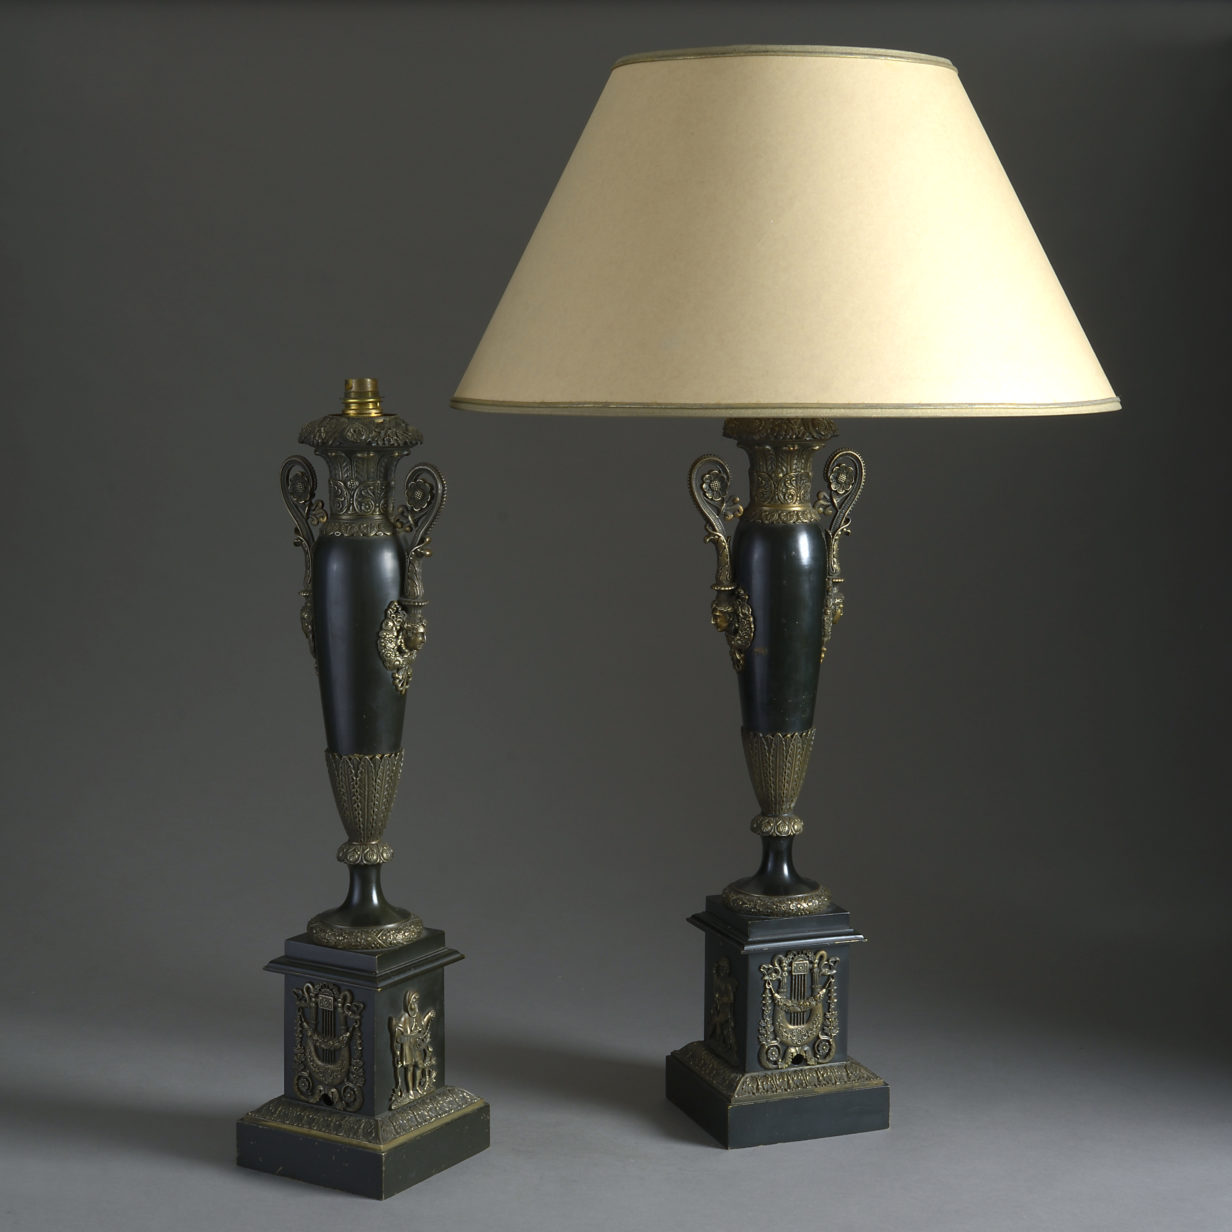 Pair of Tole Lamp Bases